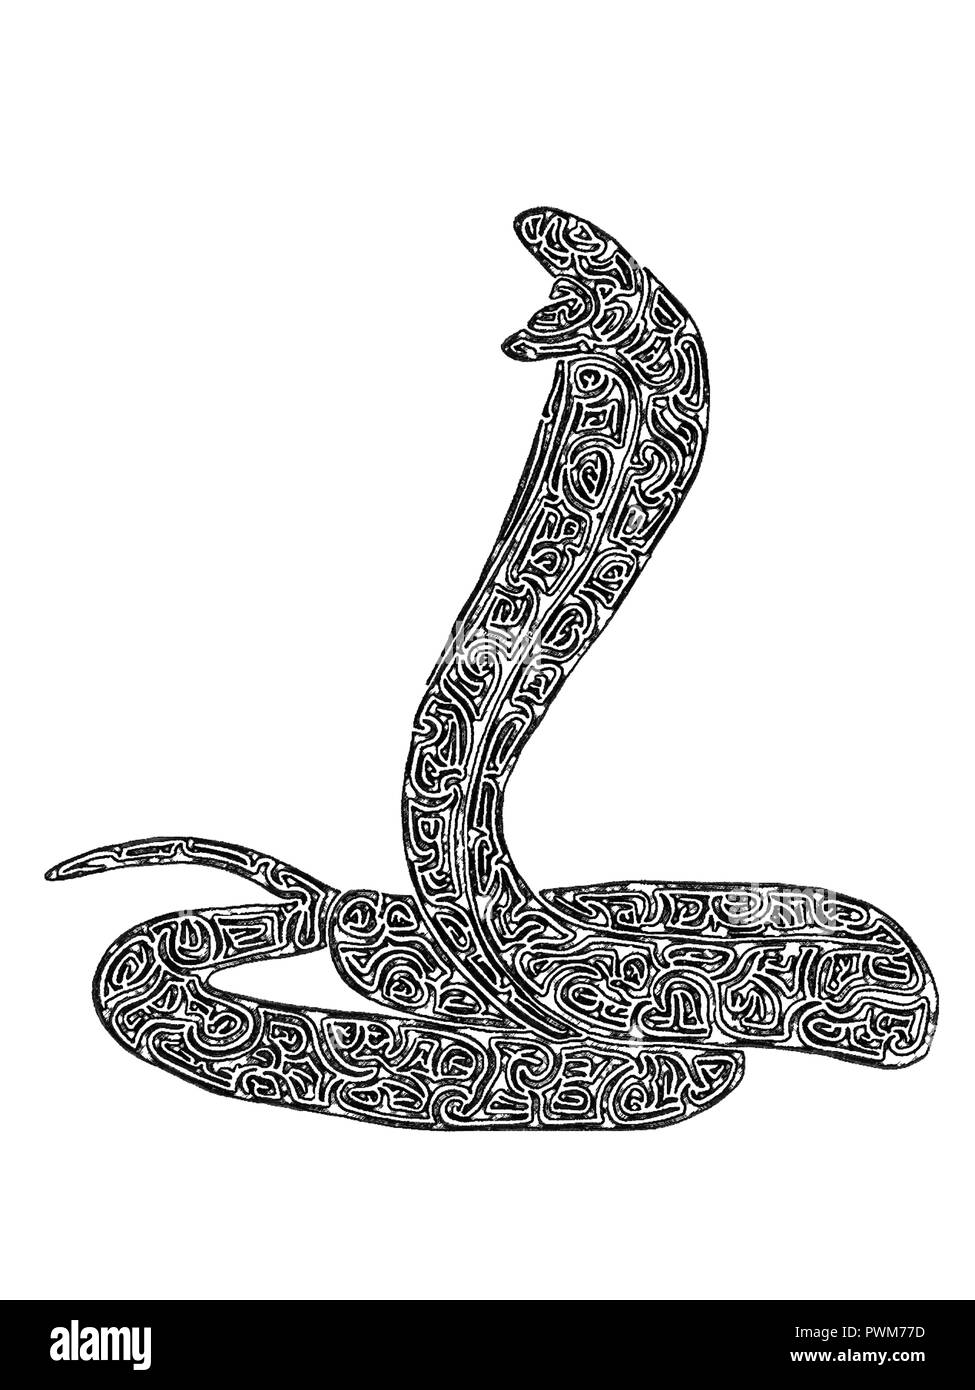 Illustration of Cobra in threatening position with its head upright, black-and-white, maze lines, drawing - Stock Image